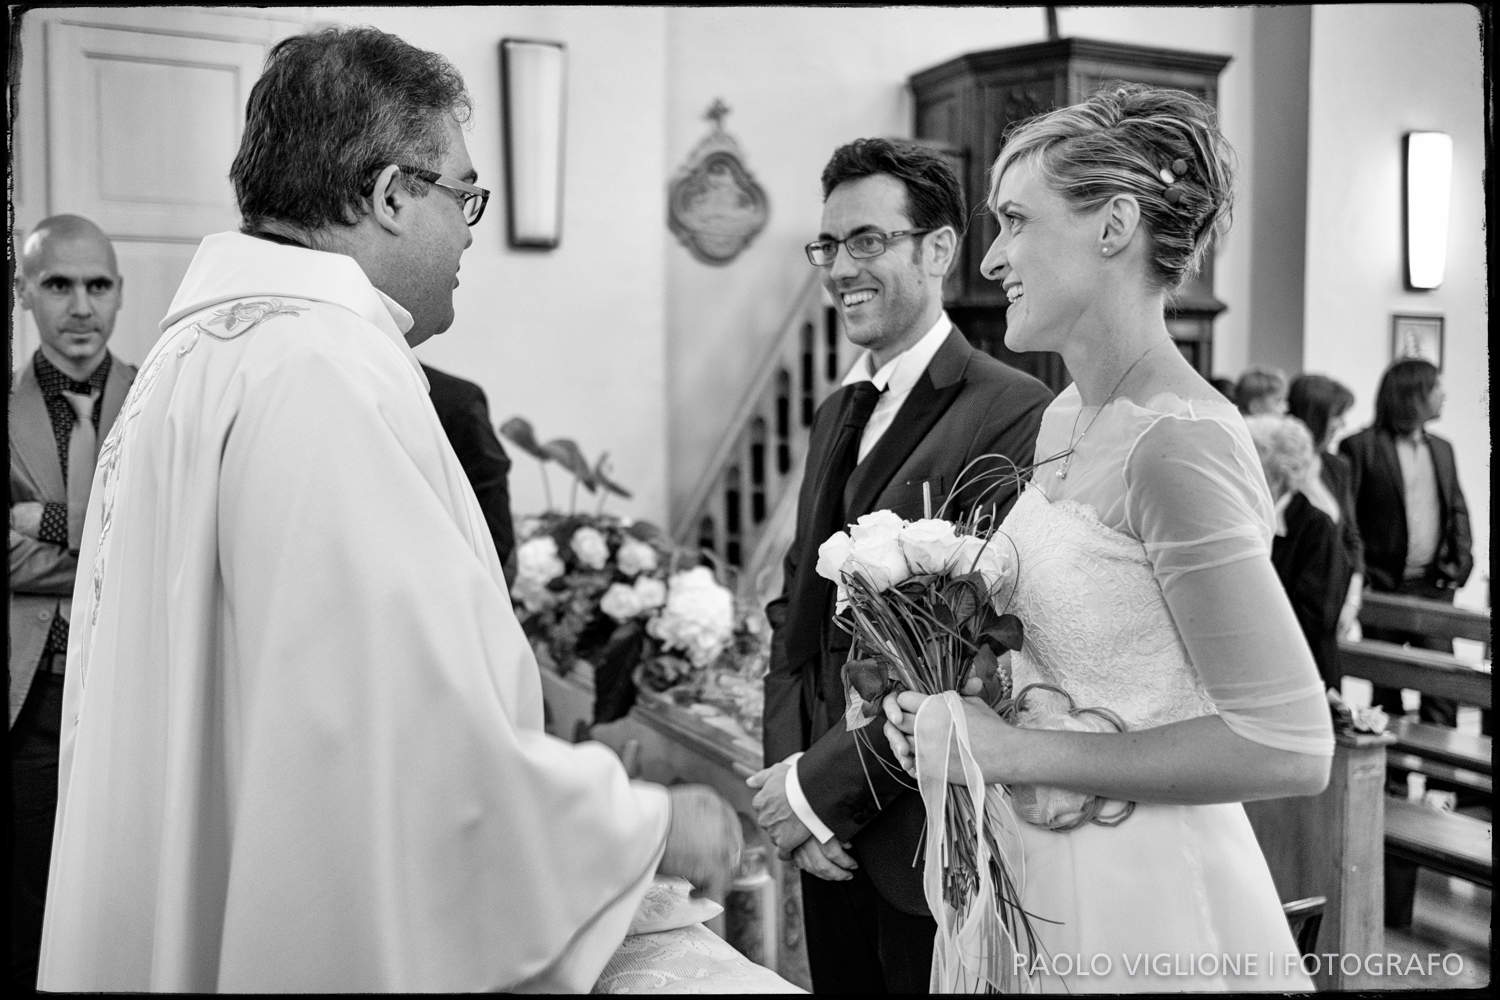 (127) _DSF4060-HR-Edit Enrico Pellegrino, Germana Dalmasso, in album, Matrimonio, Vernante